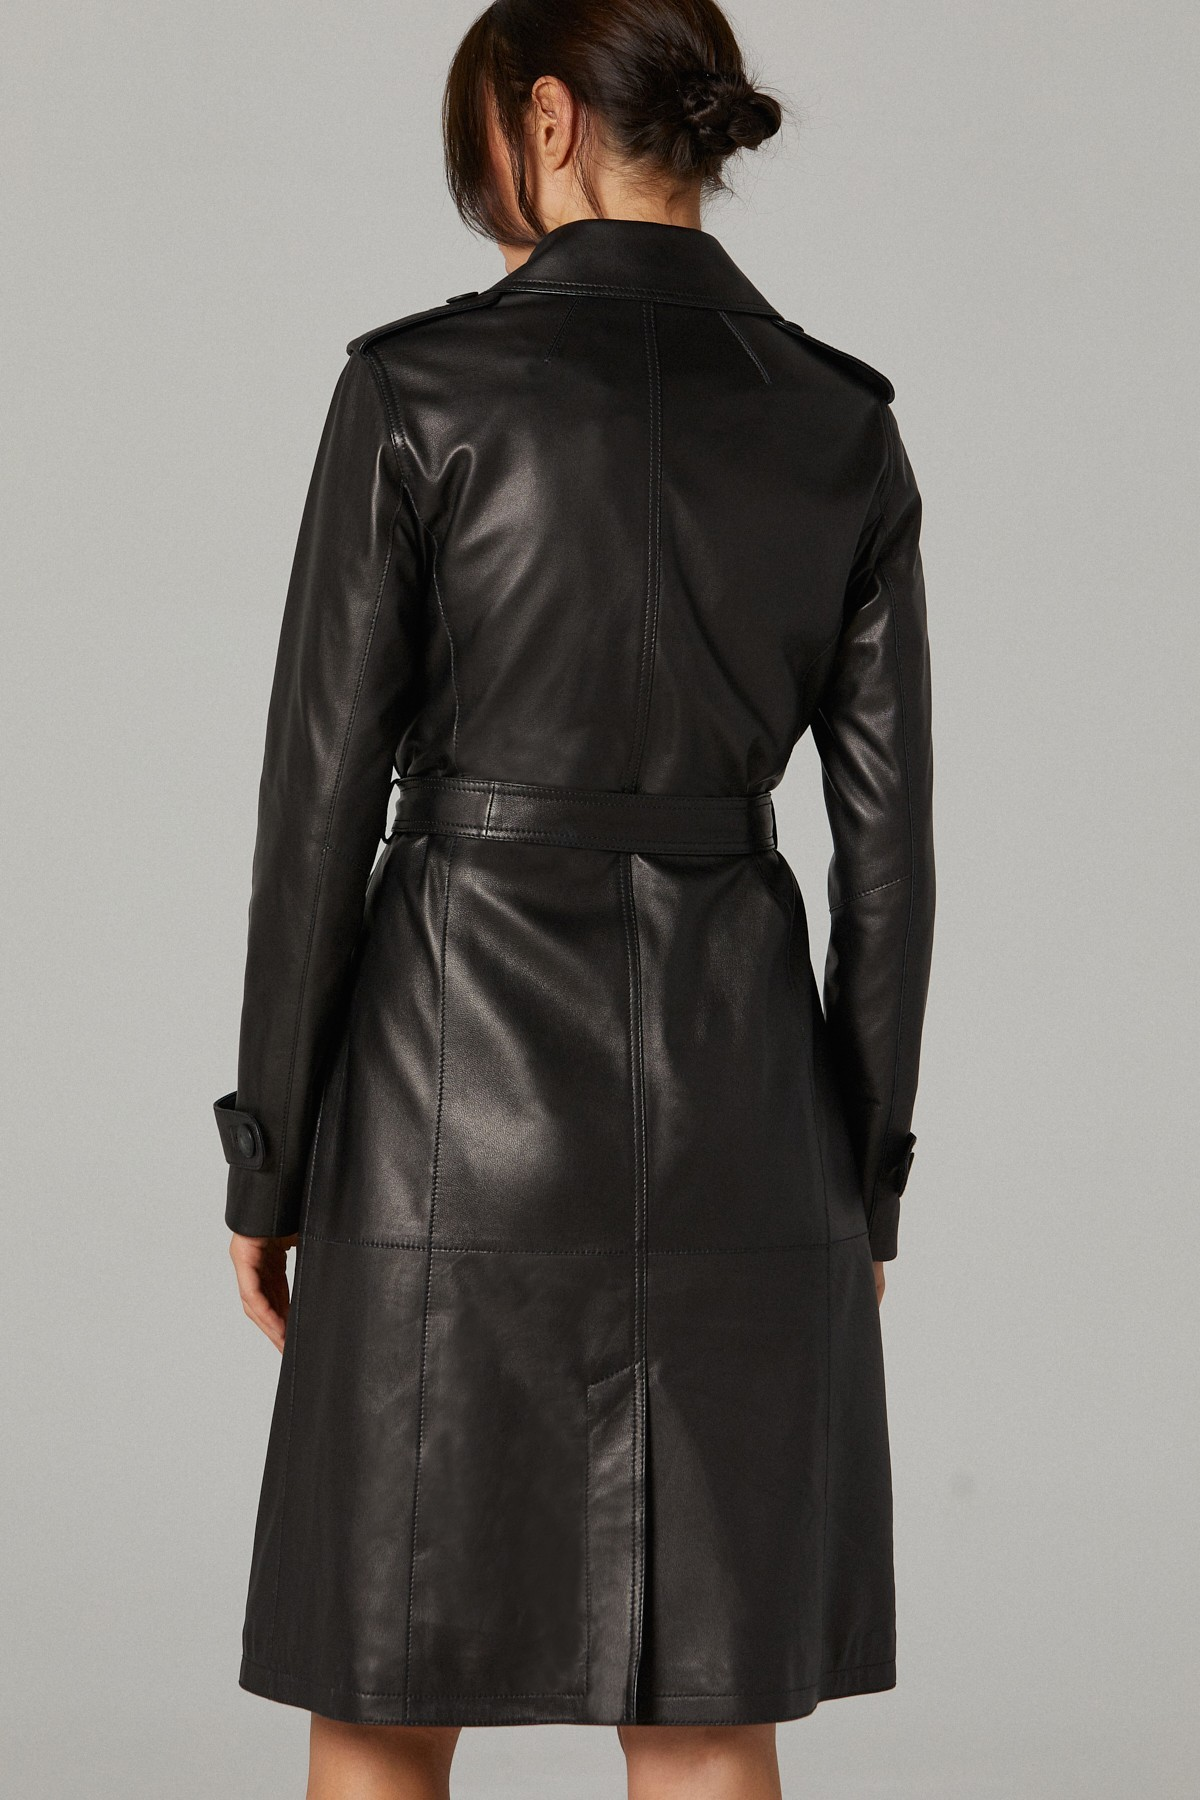 Topshop Womens Leather Jackets